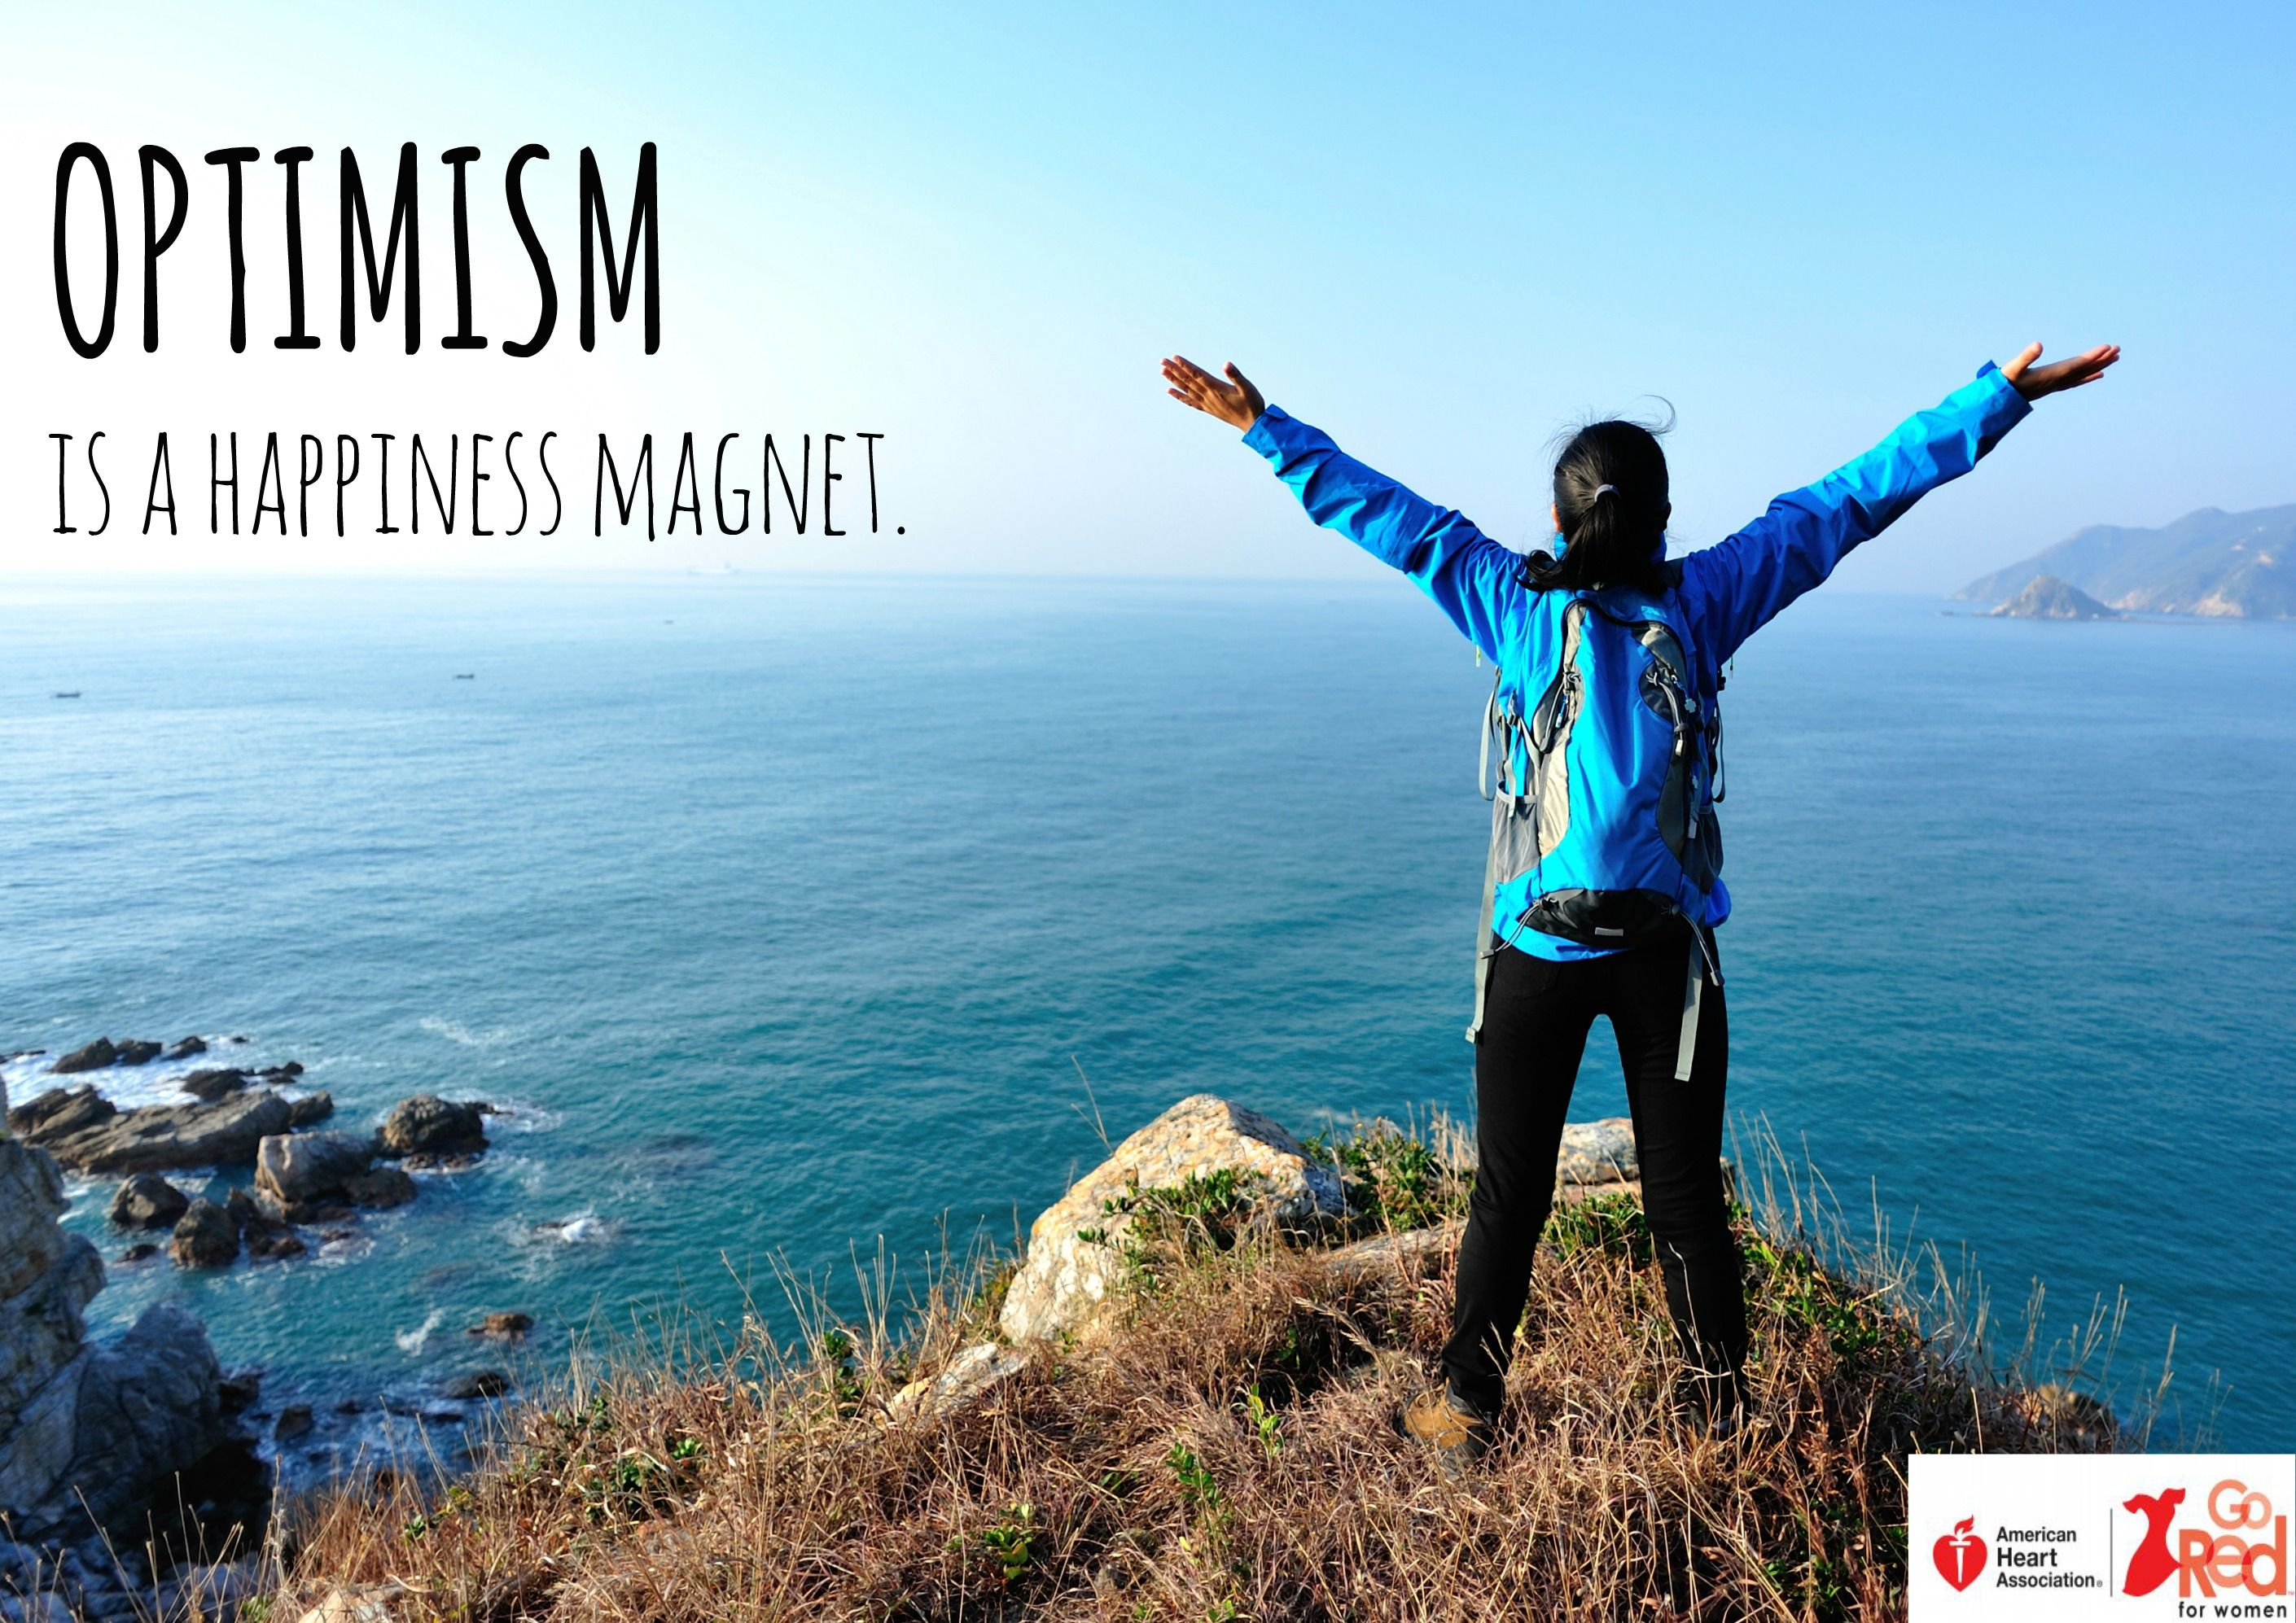 Optimism is a happiness magnet! #Motivational Kanawha City Pediatric Dentistry   #Charleston   #WV   www.pediatricdentistcharleston.com